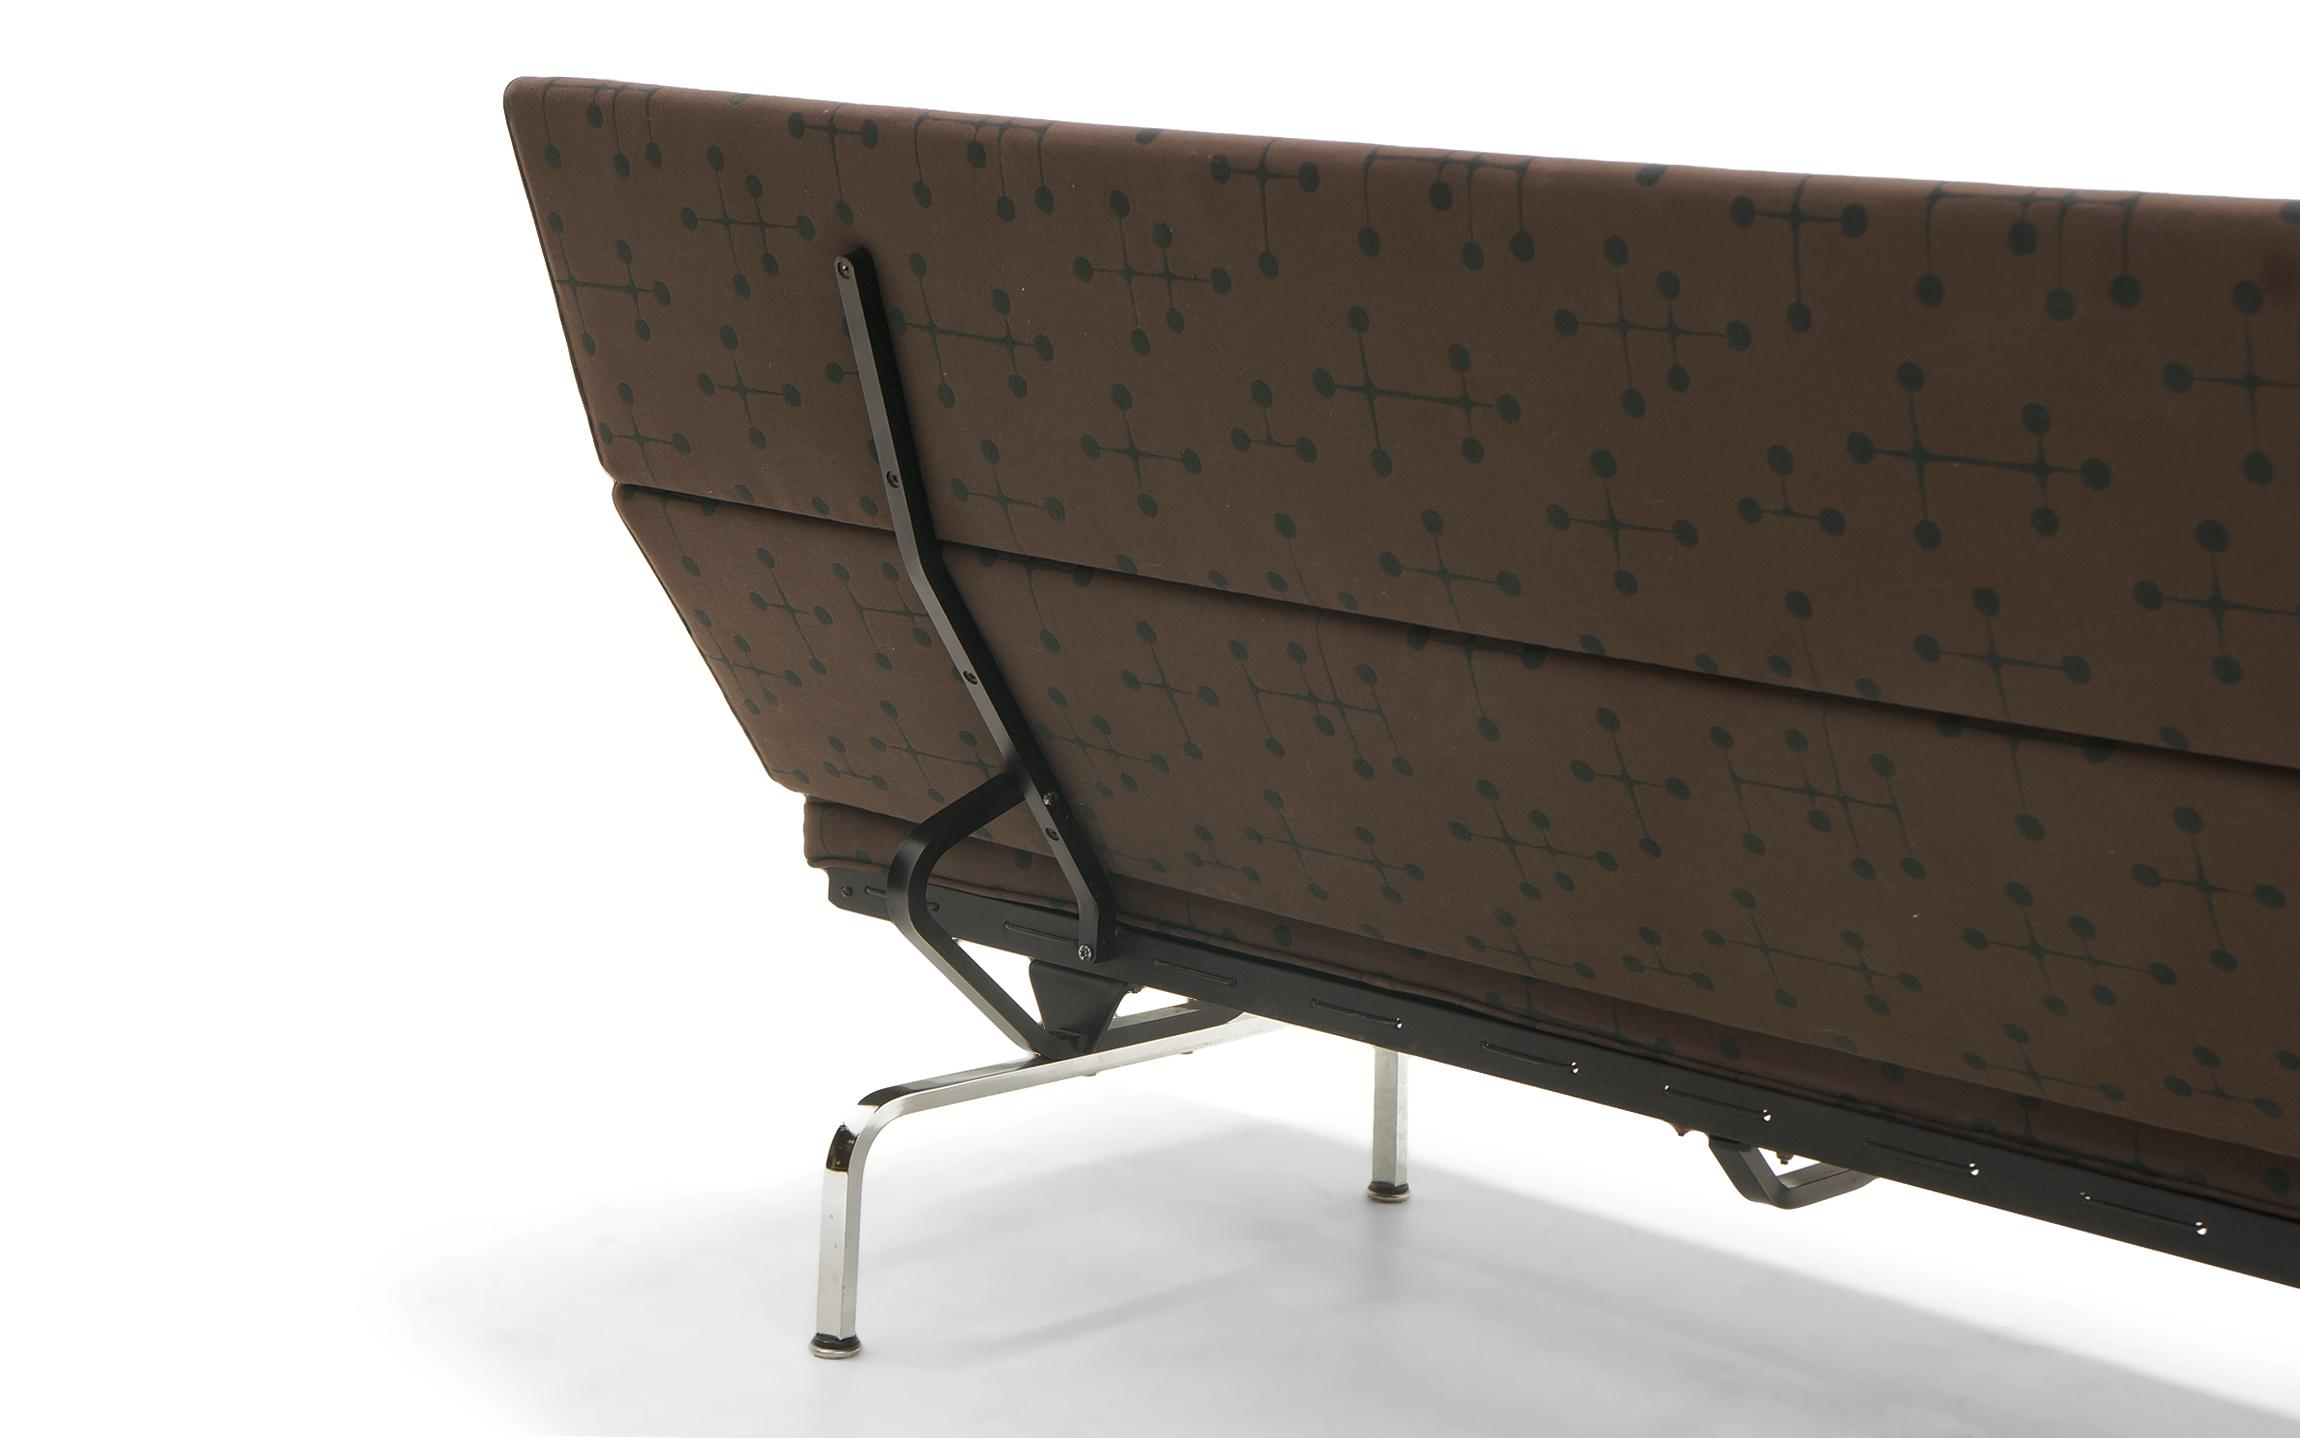 eames sofa compact jong psv helmond sport sofascore distinguished charles and ray for herman miller aluminum in dot pattern fabric